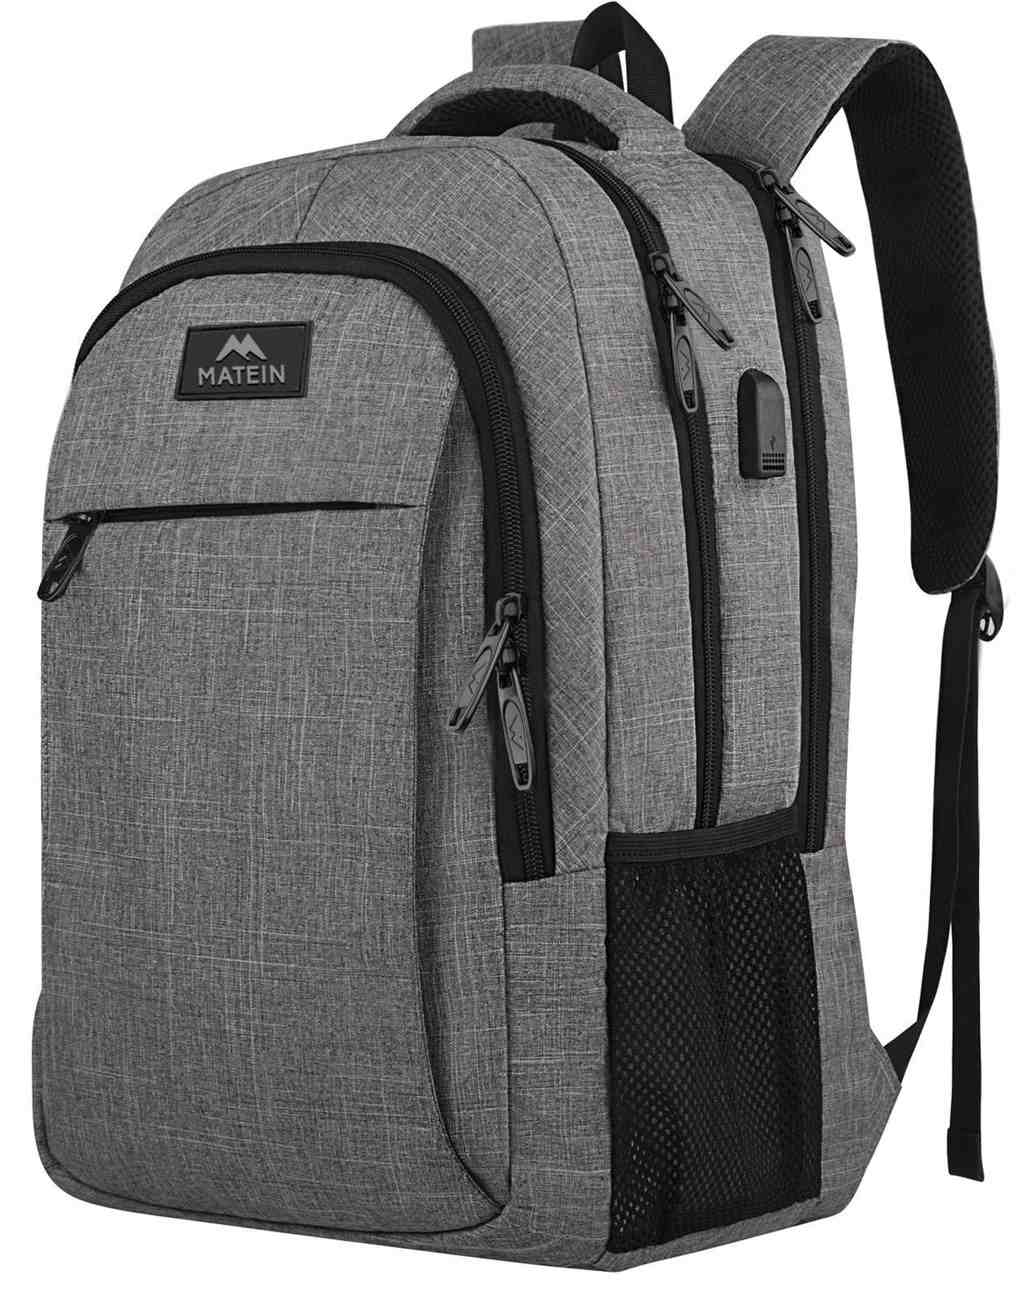 Business Travel MacBook Backpack